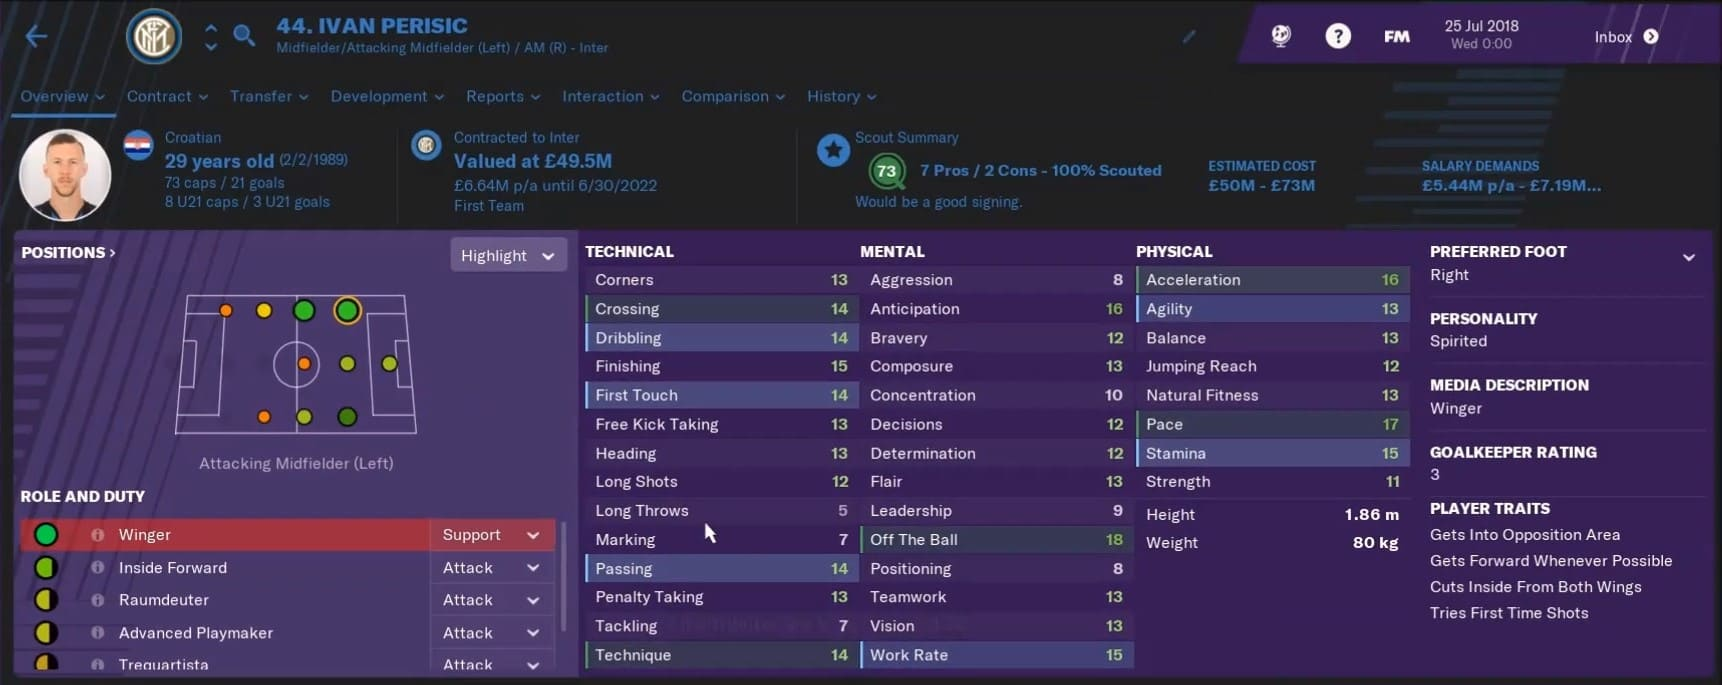 ivan perisic fm19 - perisic football manager 2019